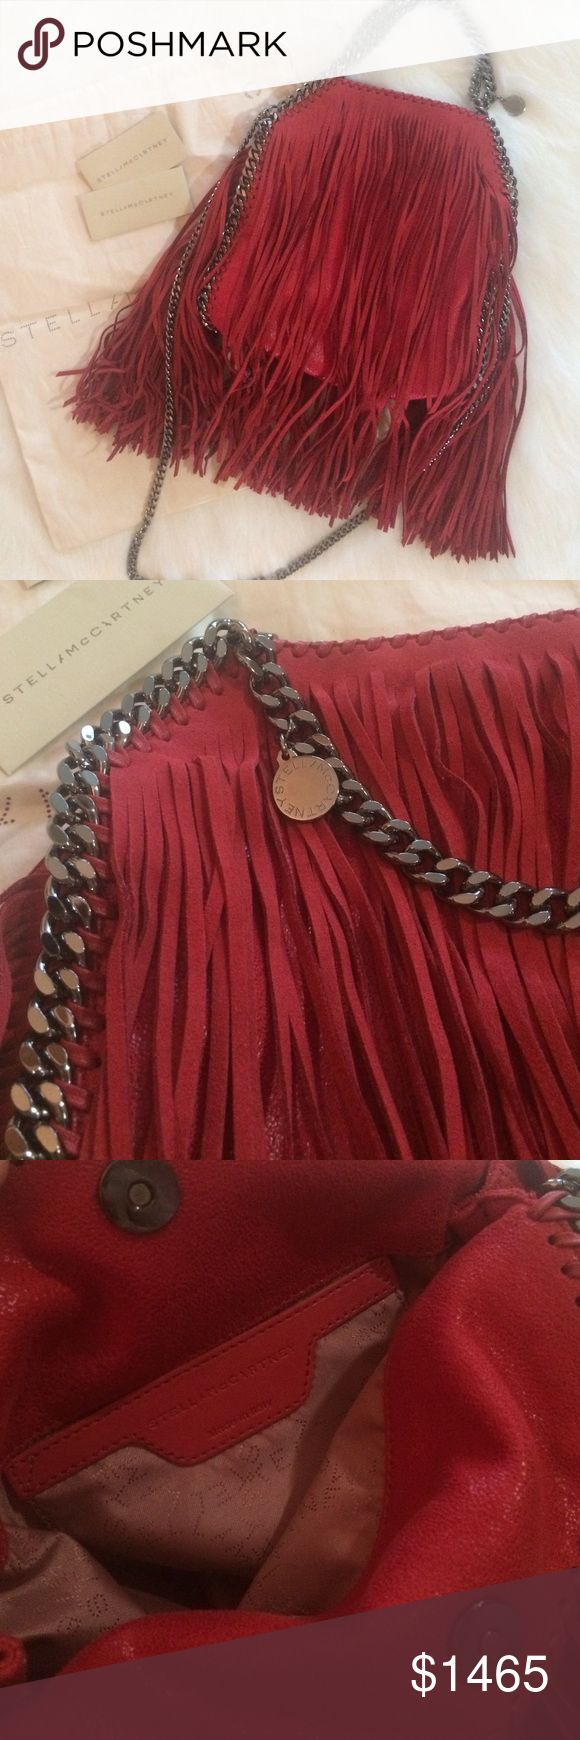 NWOT*Stella McCartney Mini Fringe Falabella Authentic. Never used. Mini cherry falabella with gunmetal chain. Dust bag and original tags included. Stella McCartney Bags